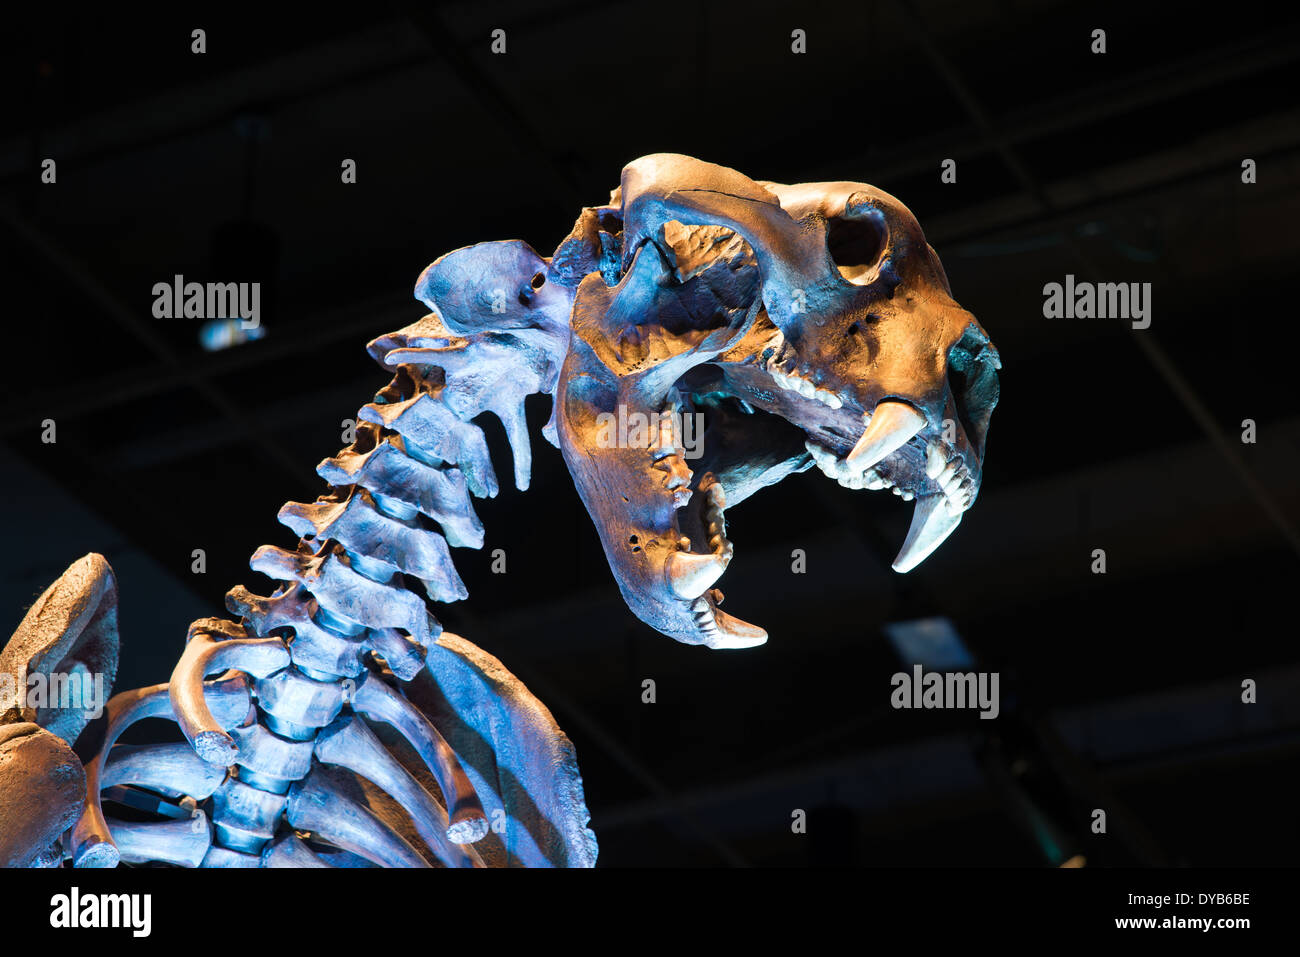 Fossil skeleton of a short-faced bear (Arctodus), an extinct bear lived in North America during the Pleistocene epoch. - Stock Image